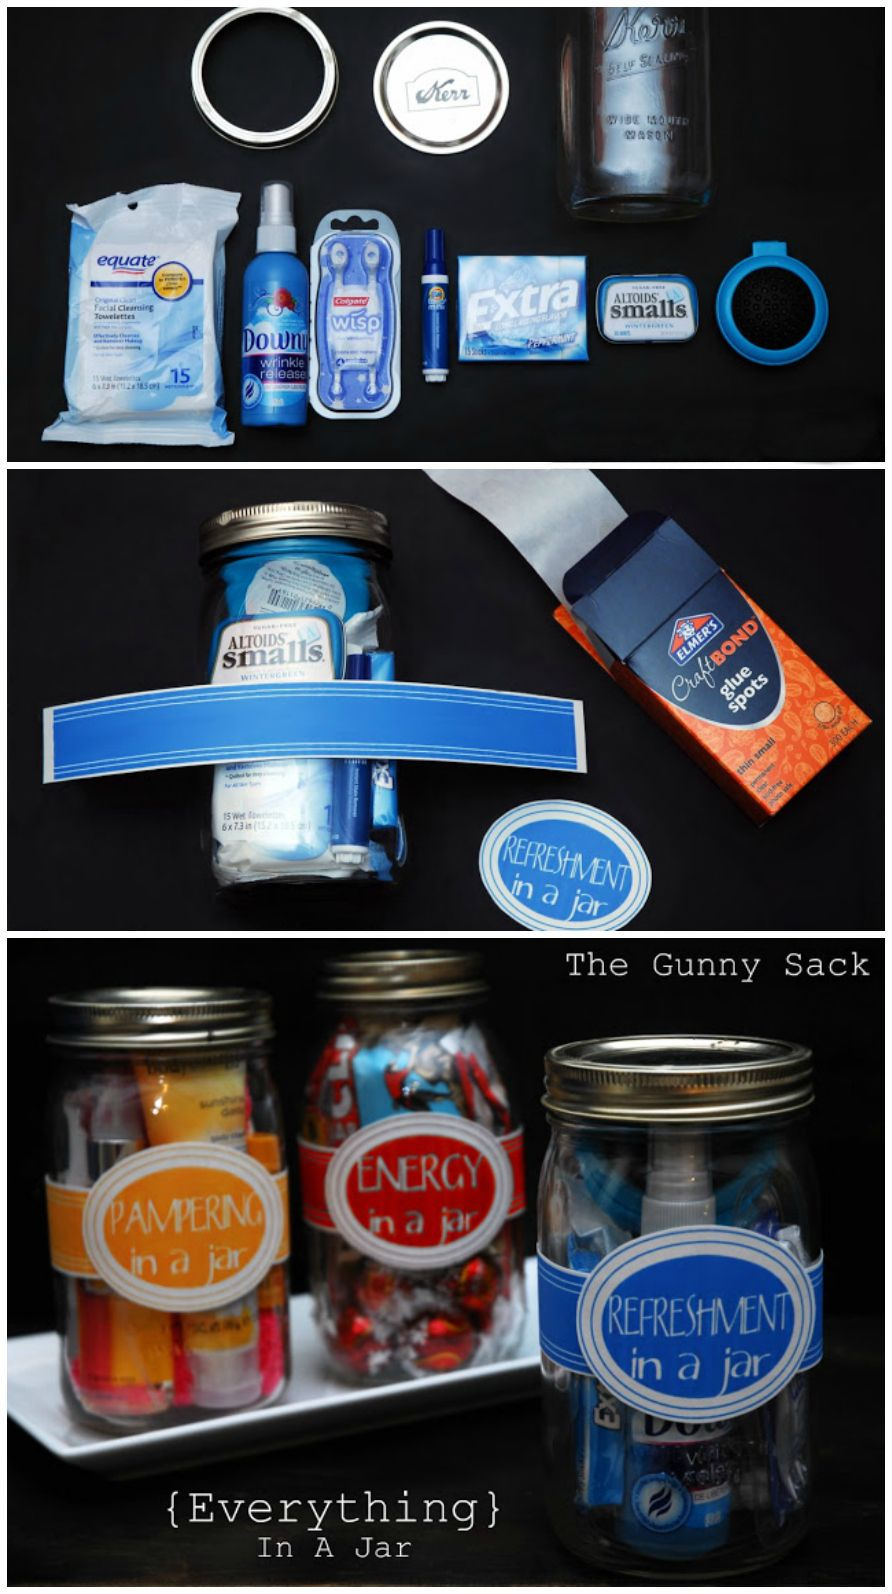 Give gifts in a jar by stuffing related items into a mason jar and